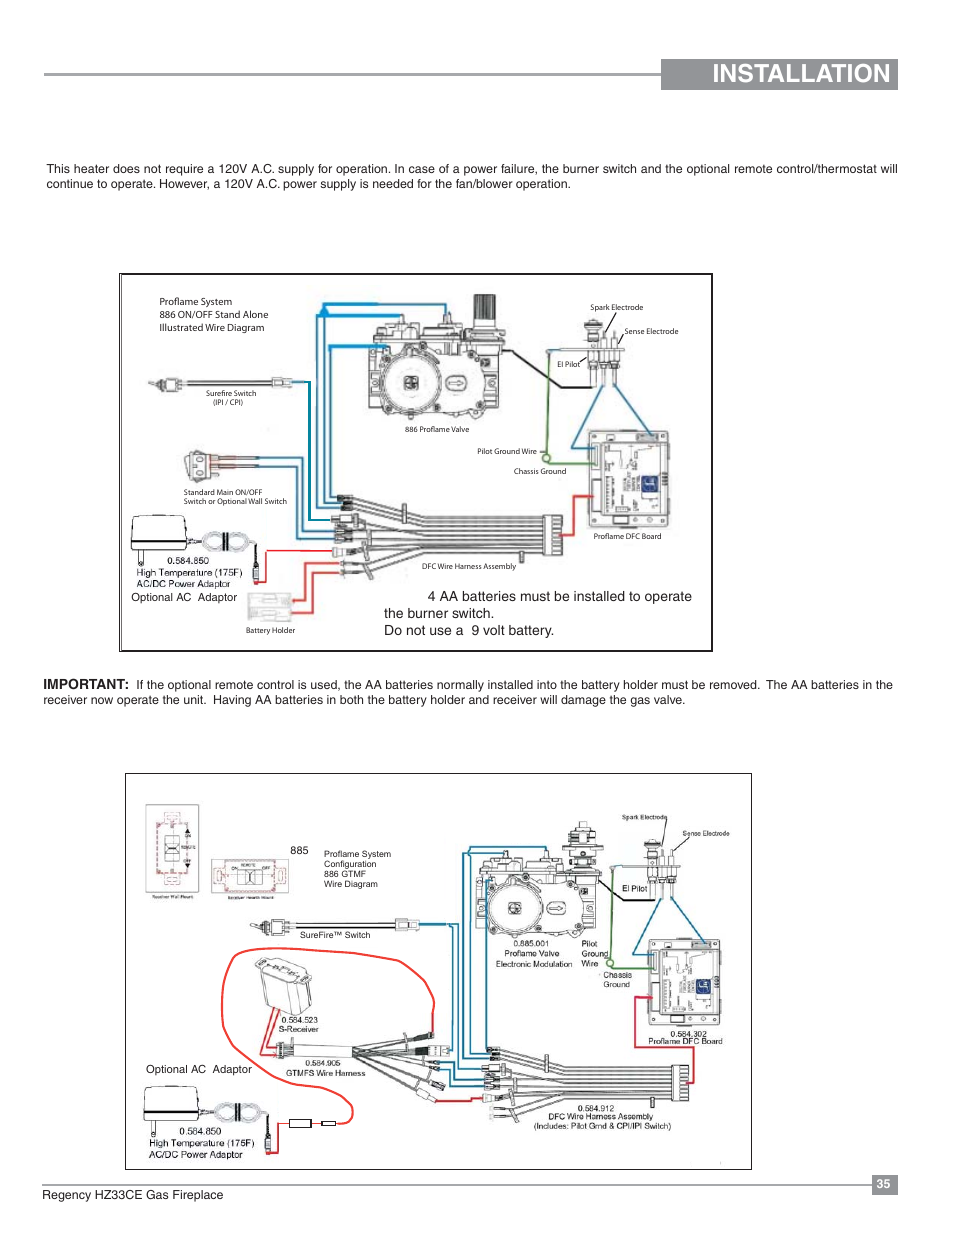 wrg 8765] 886 wiring diagraminstallation, wiring diagrams, proflame system gt regency horizon hz33ce small gas fireplace user